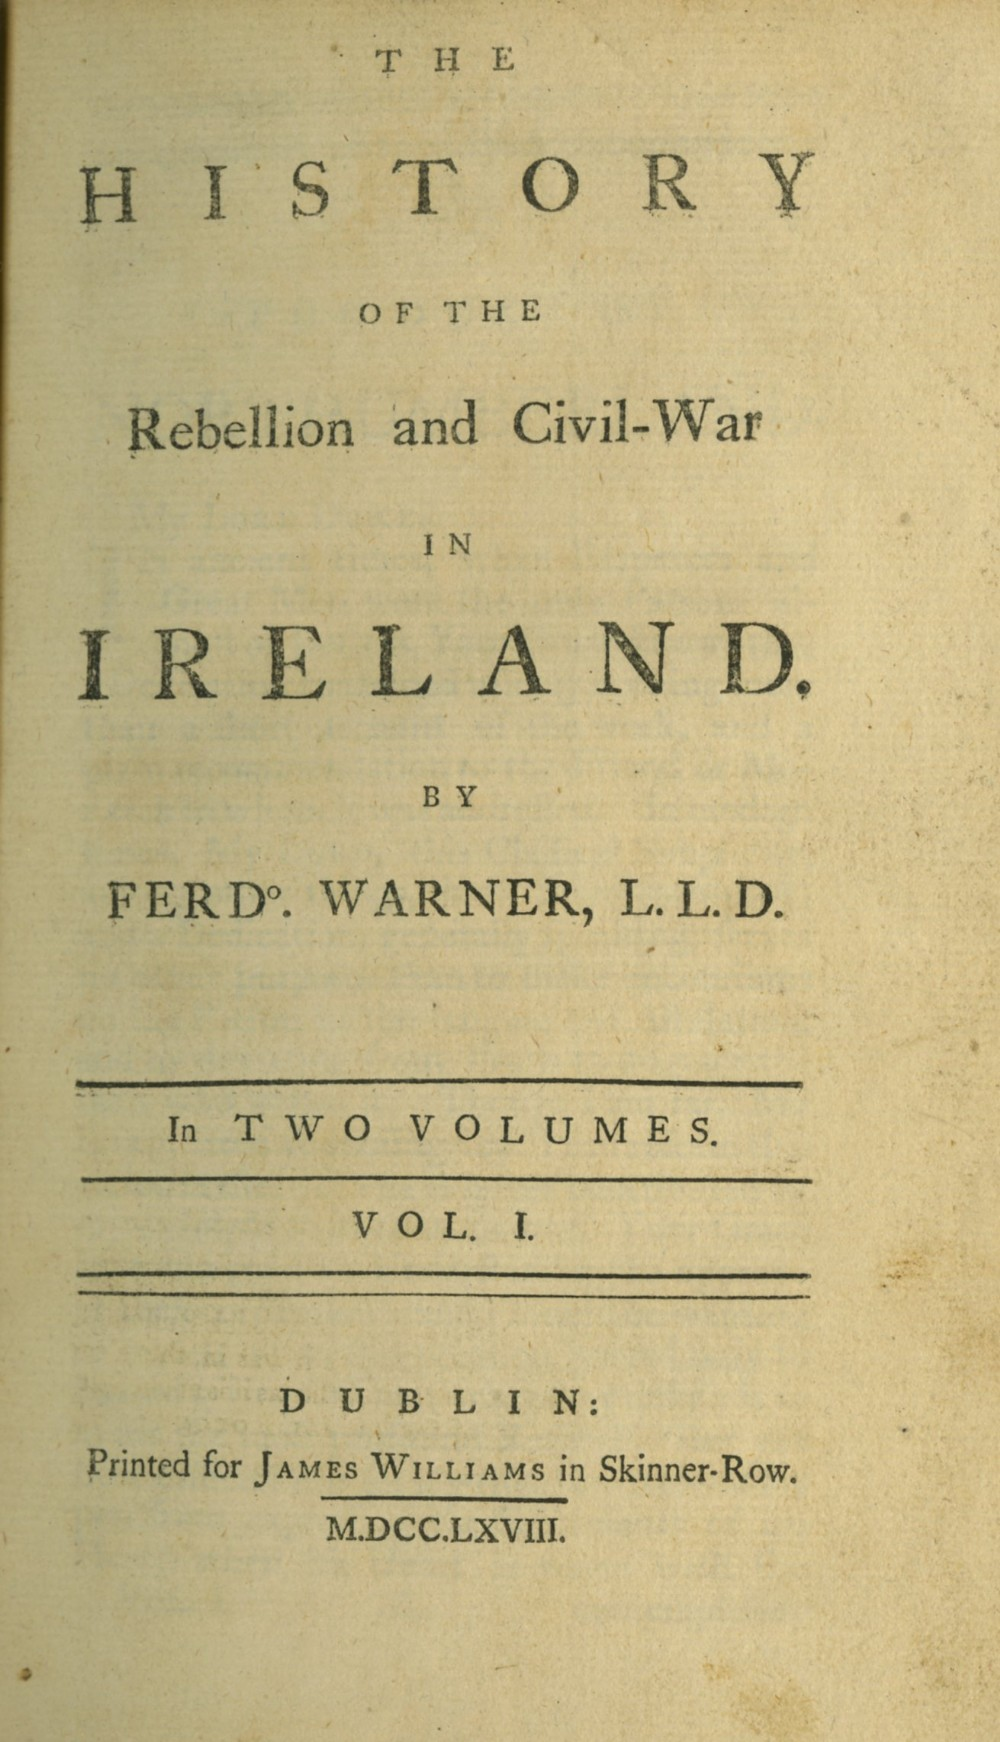 Lot 9 - Warner (Ferdo.) The History of the Rebellion and Civil War in Ireland, 2 vols. 8vo D. 1768.